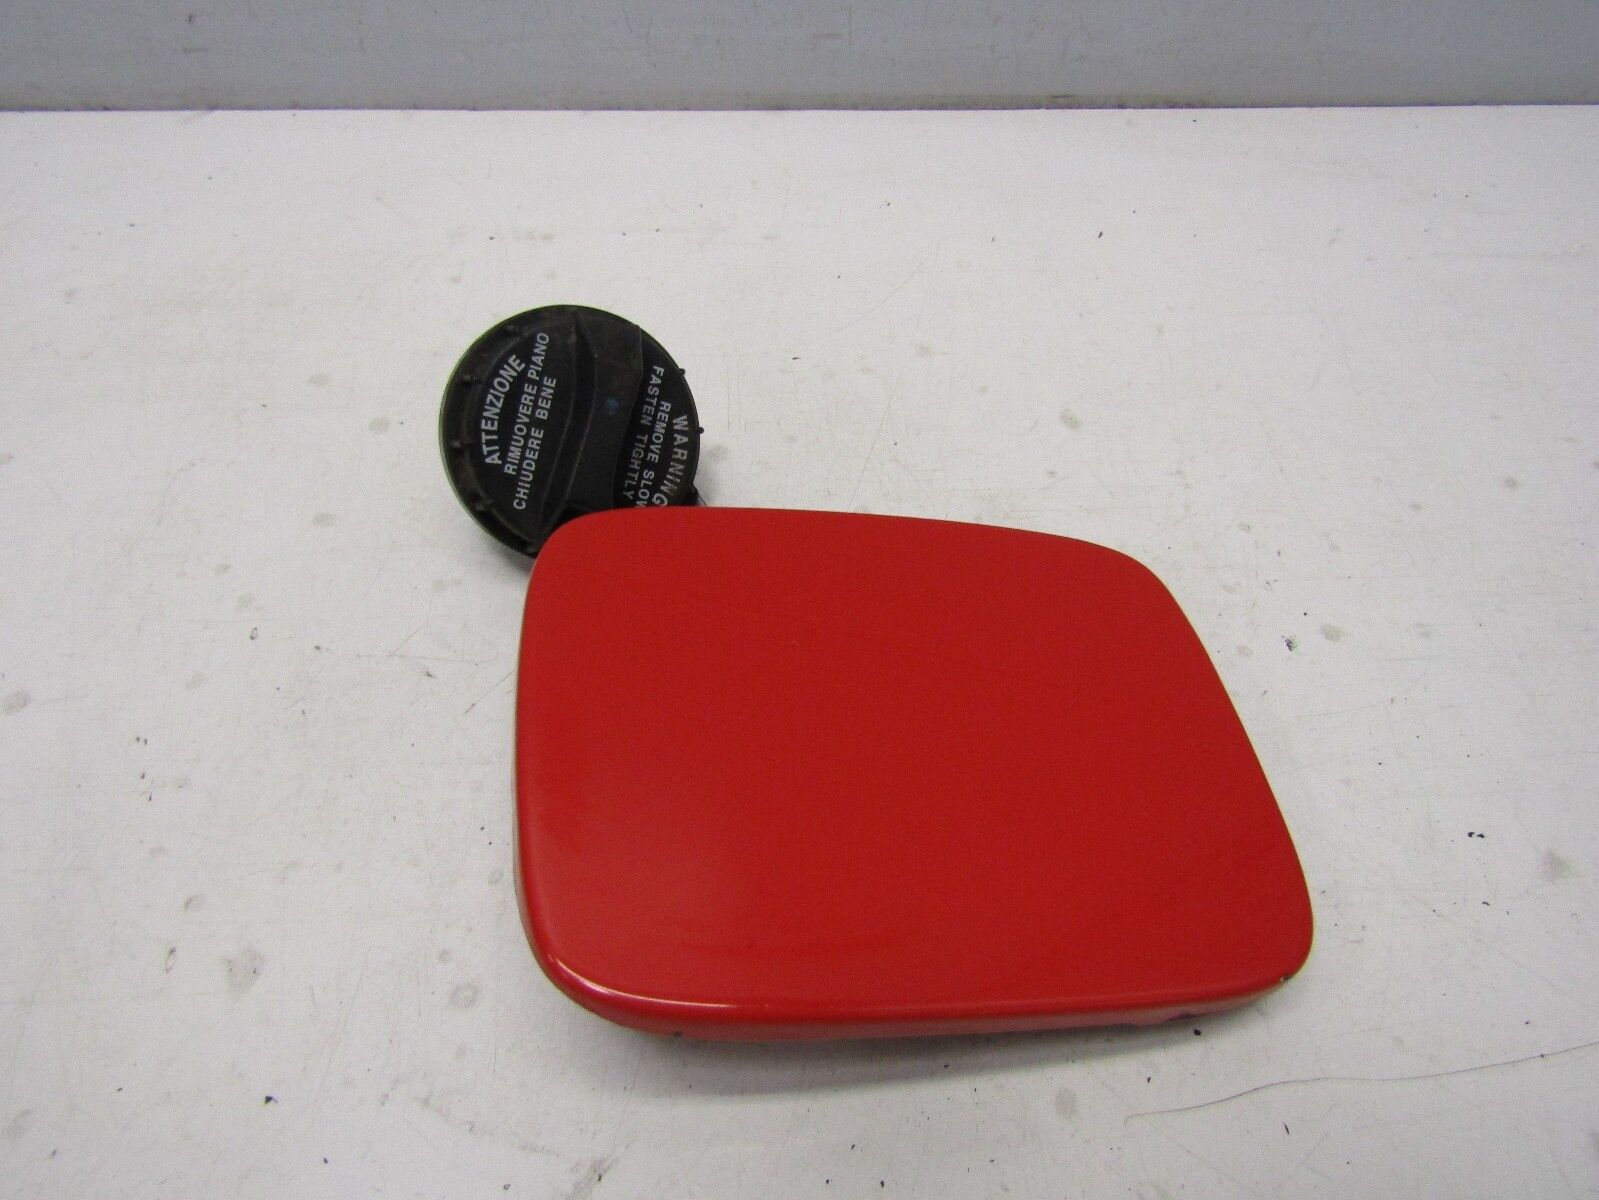 HYUNDAI I10 2008-11 FUEL FILLER FLAP & CAP (H4 ELECTRIC RED)               #0175